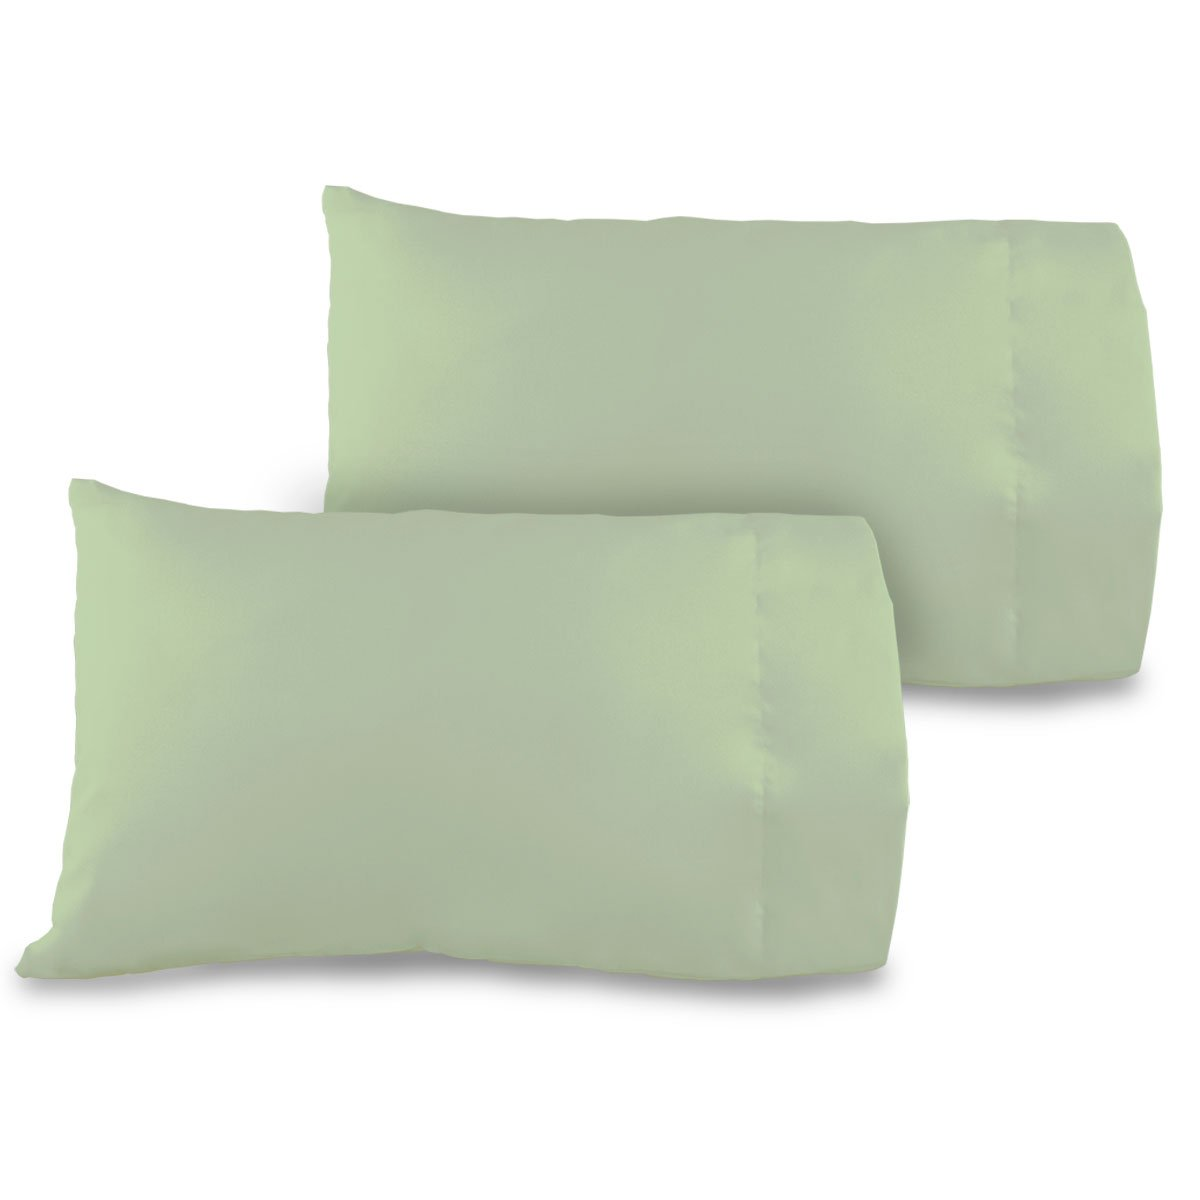 Allyson Brooke Home 2 pack 12x18 Pillowcase 100% cotton Perfect for MyPillow Go Anywhere Pillow Travel size, Toddler size Pillowcase 12x18 Color Sage Allyson Brooke Inc.